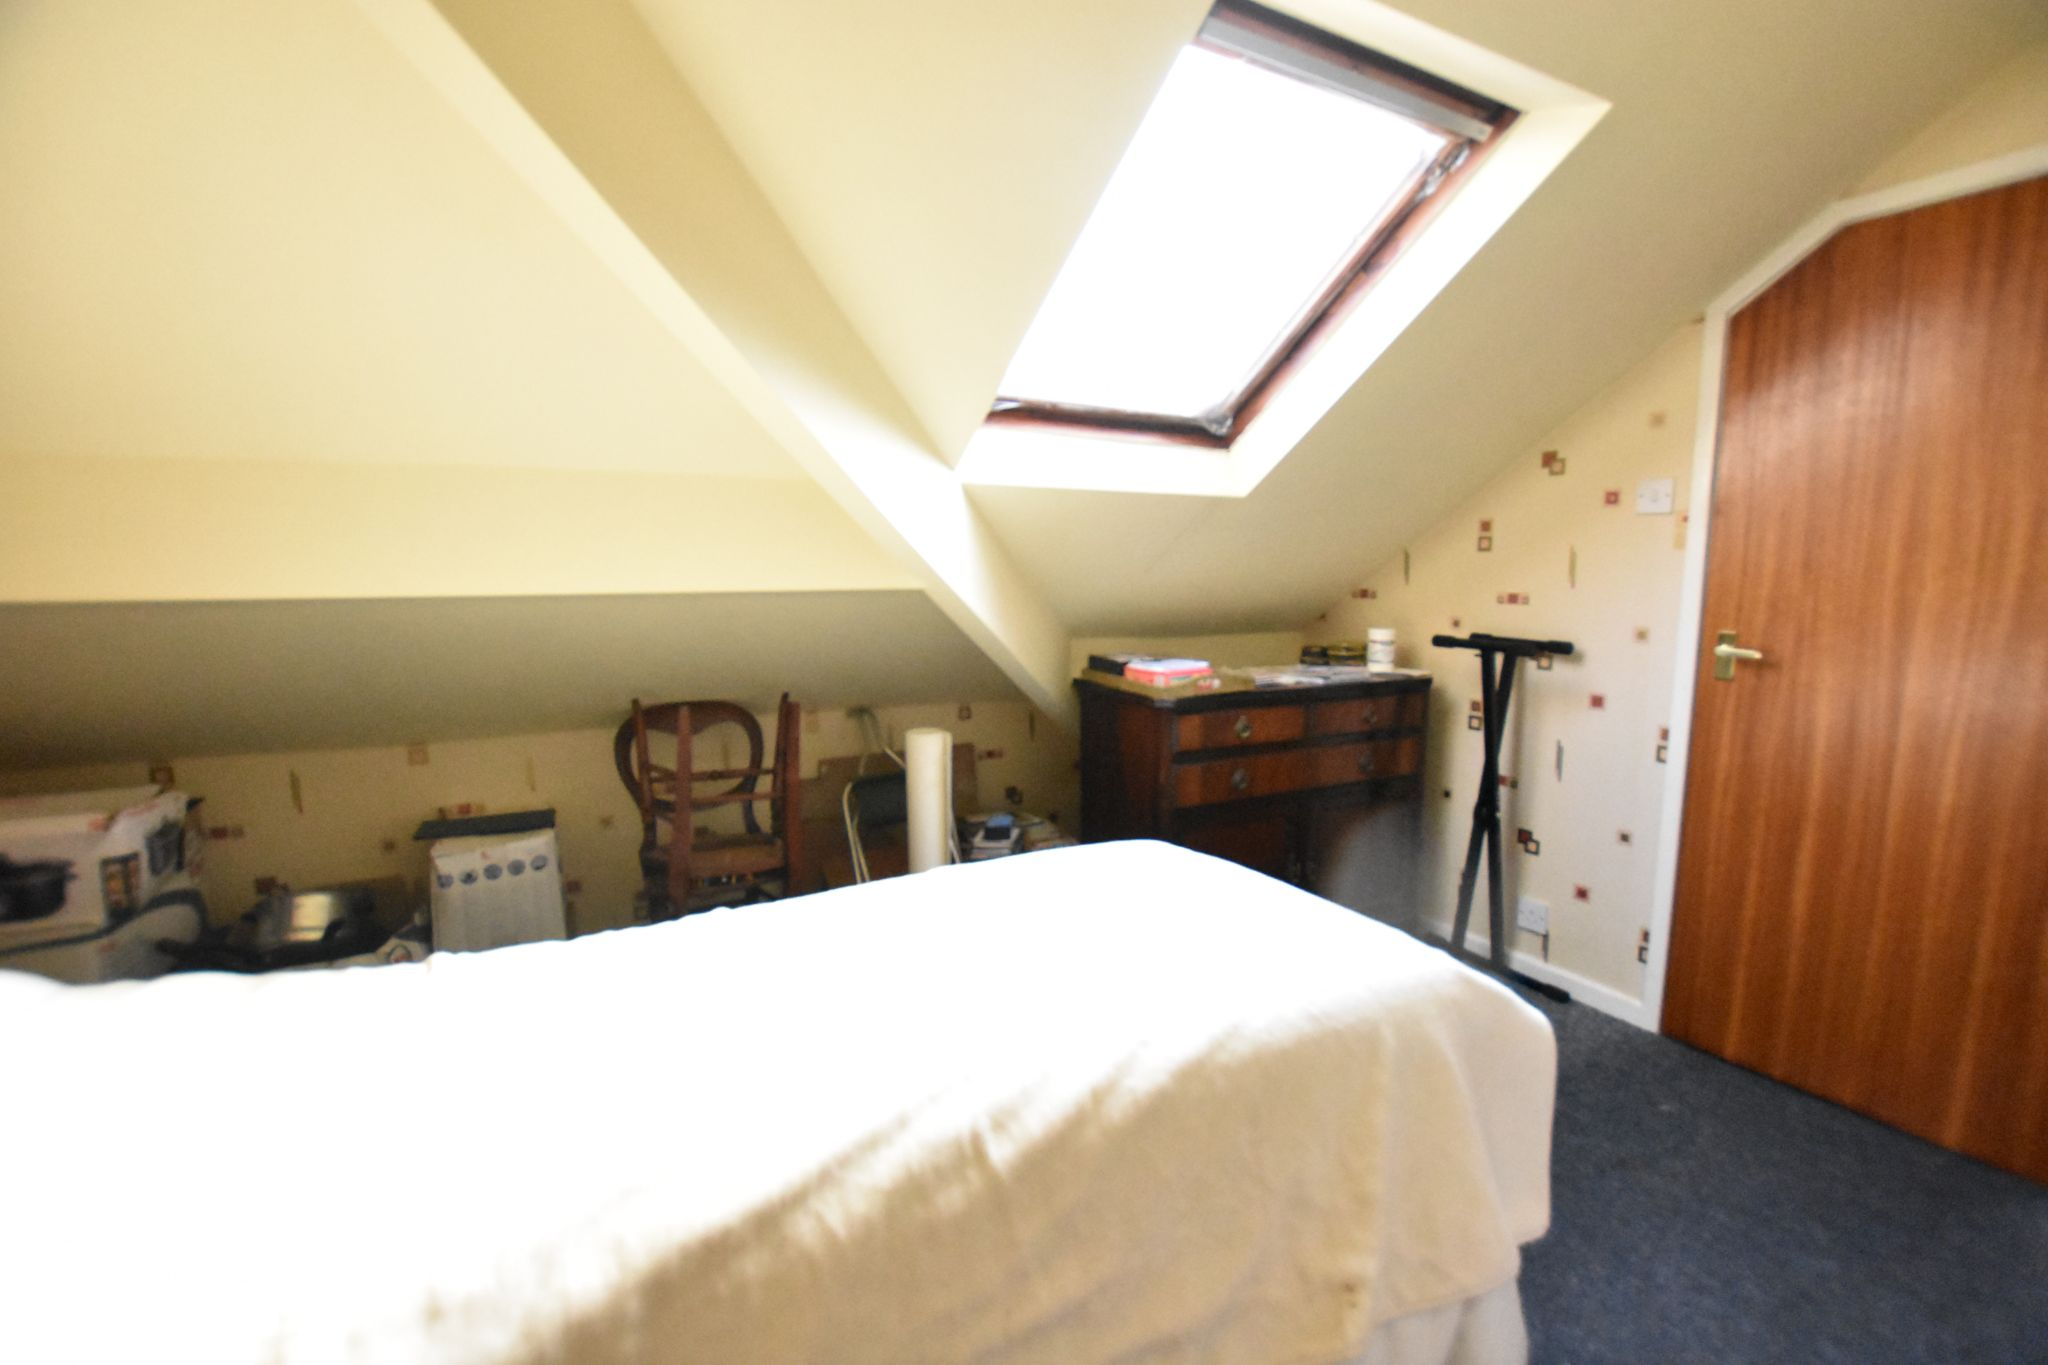 Image 2 of 2 of BEDROOM 3, on Accommodation Comprising for